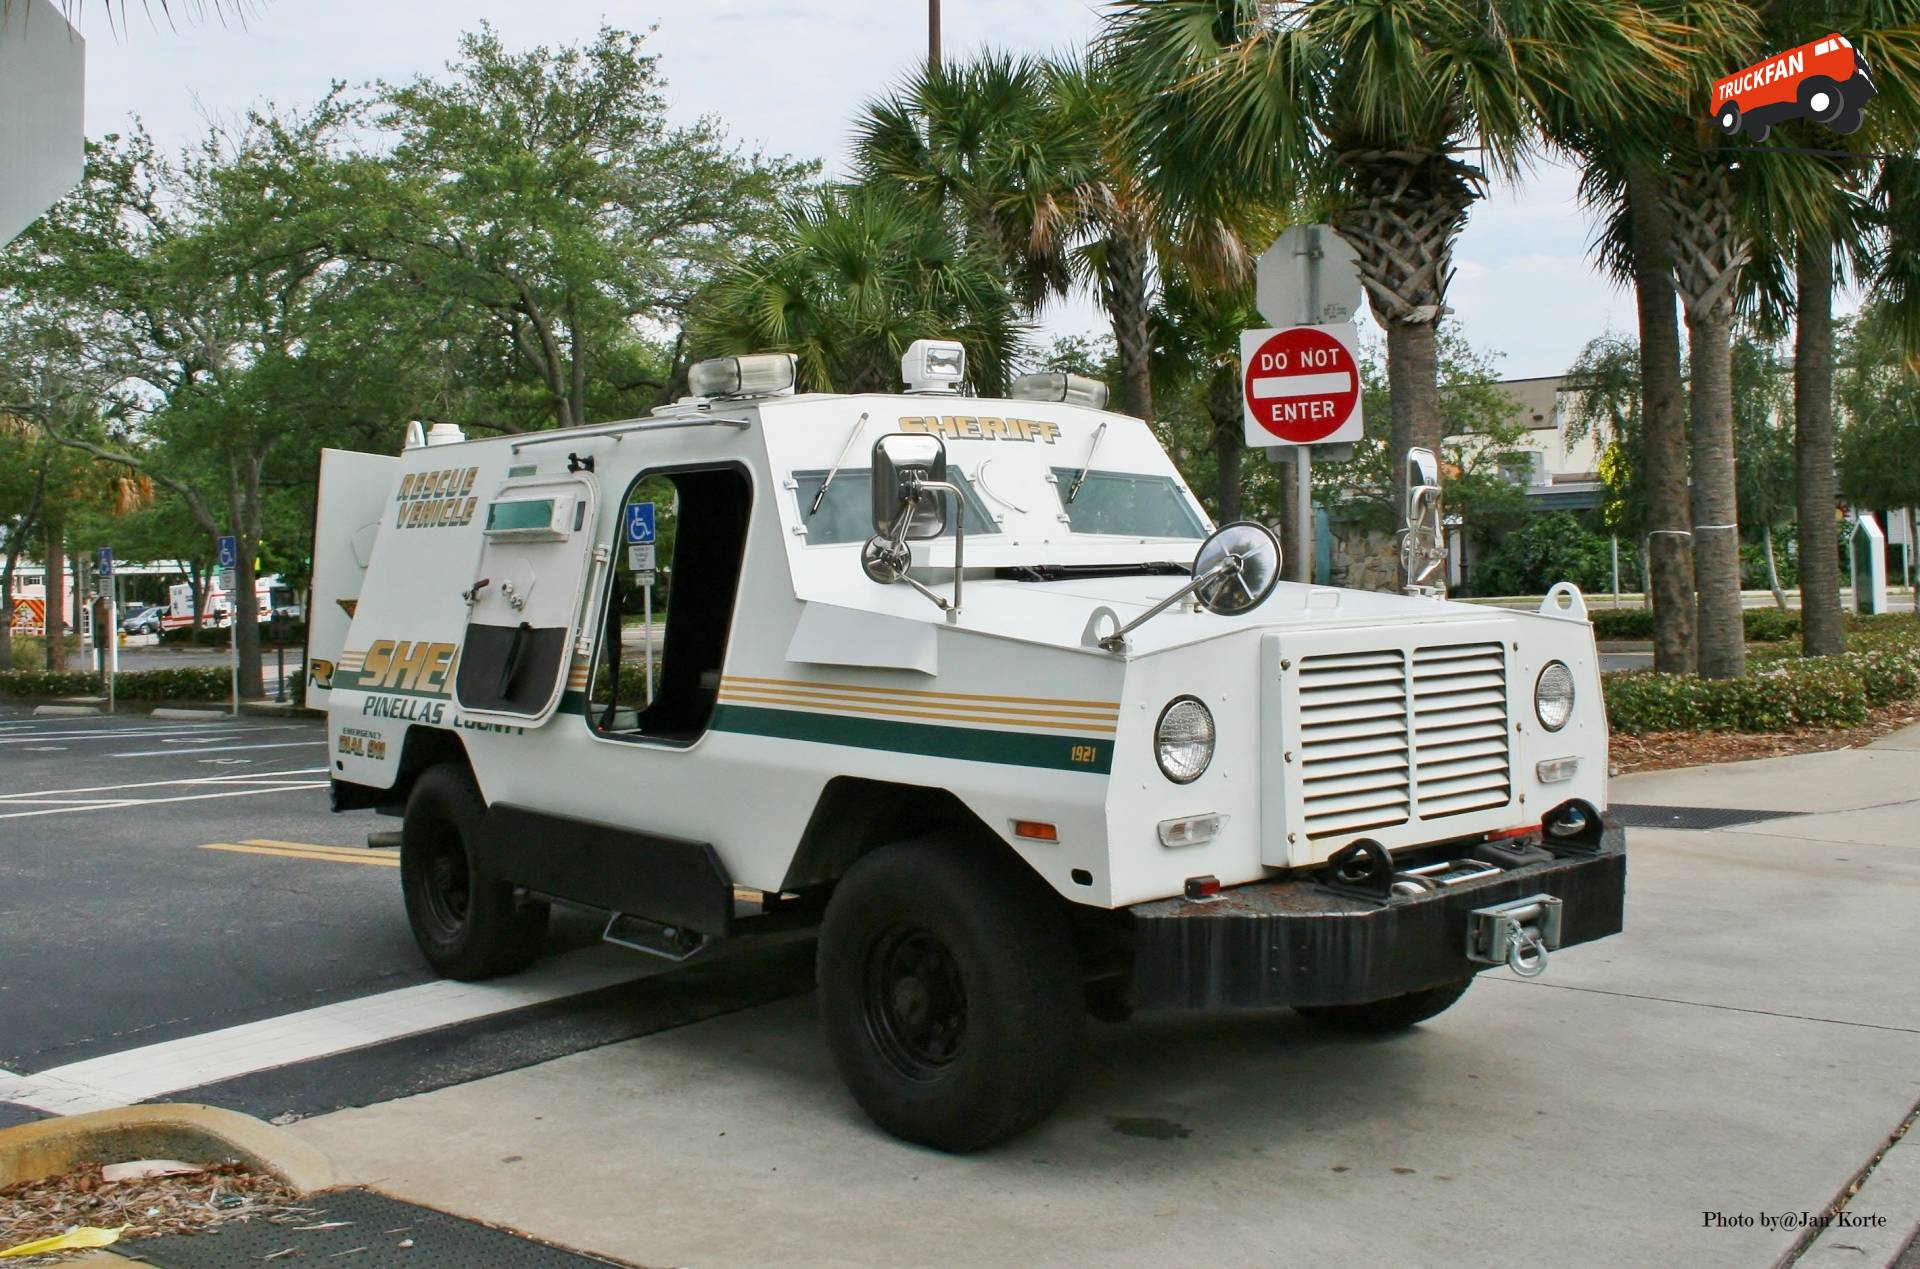 Peacekeeper Armored Rescue Vehicle